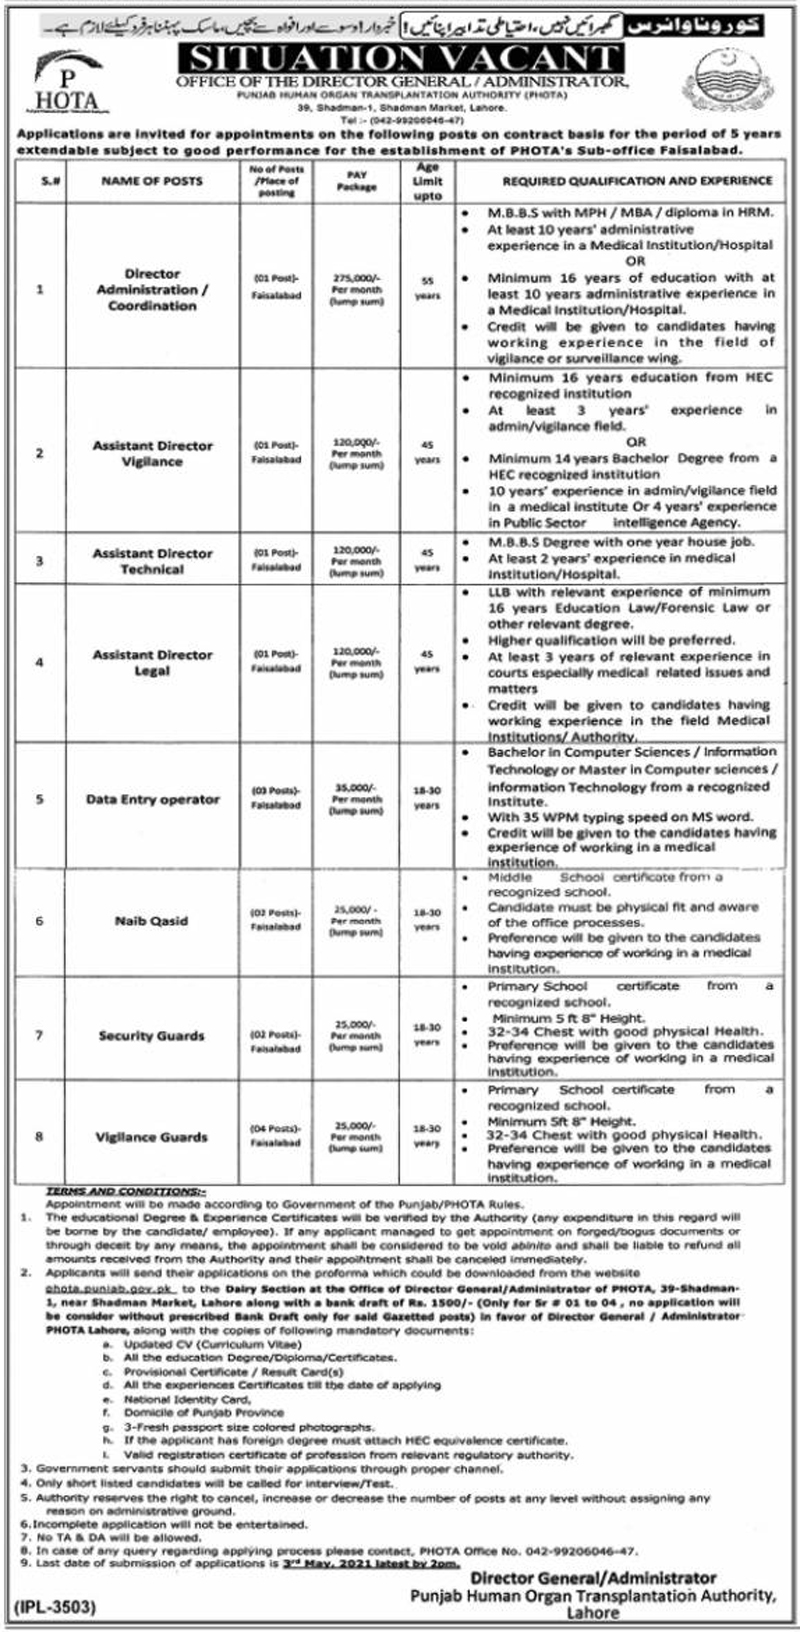 Punjab Human Organ Transplantation Authority PHOTA Jobs 2021